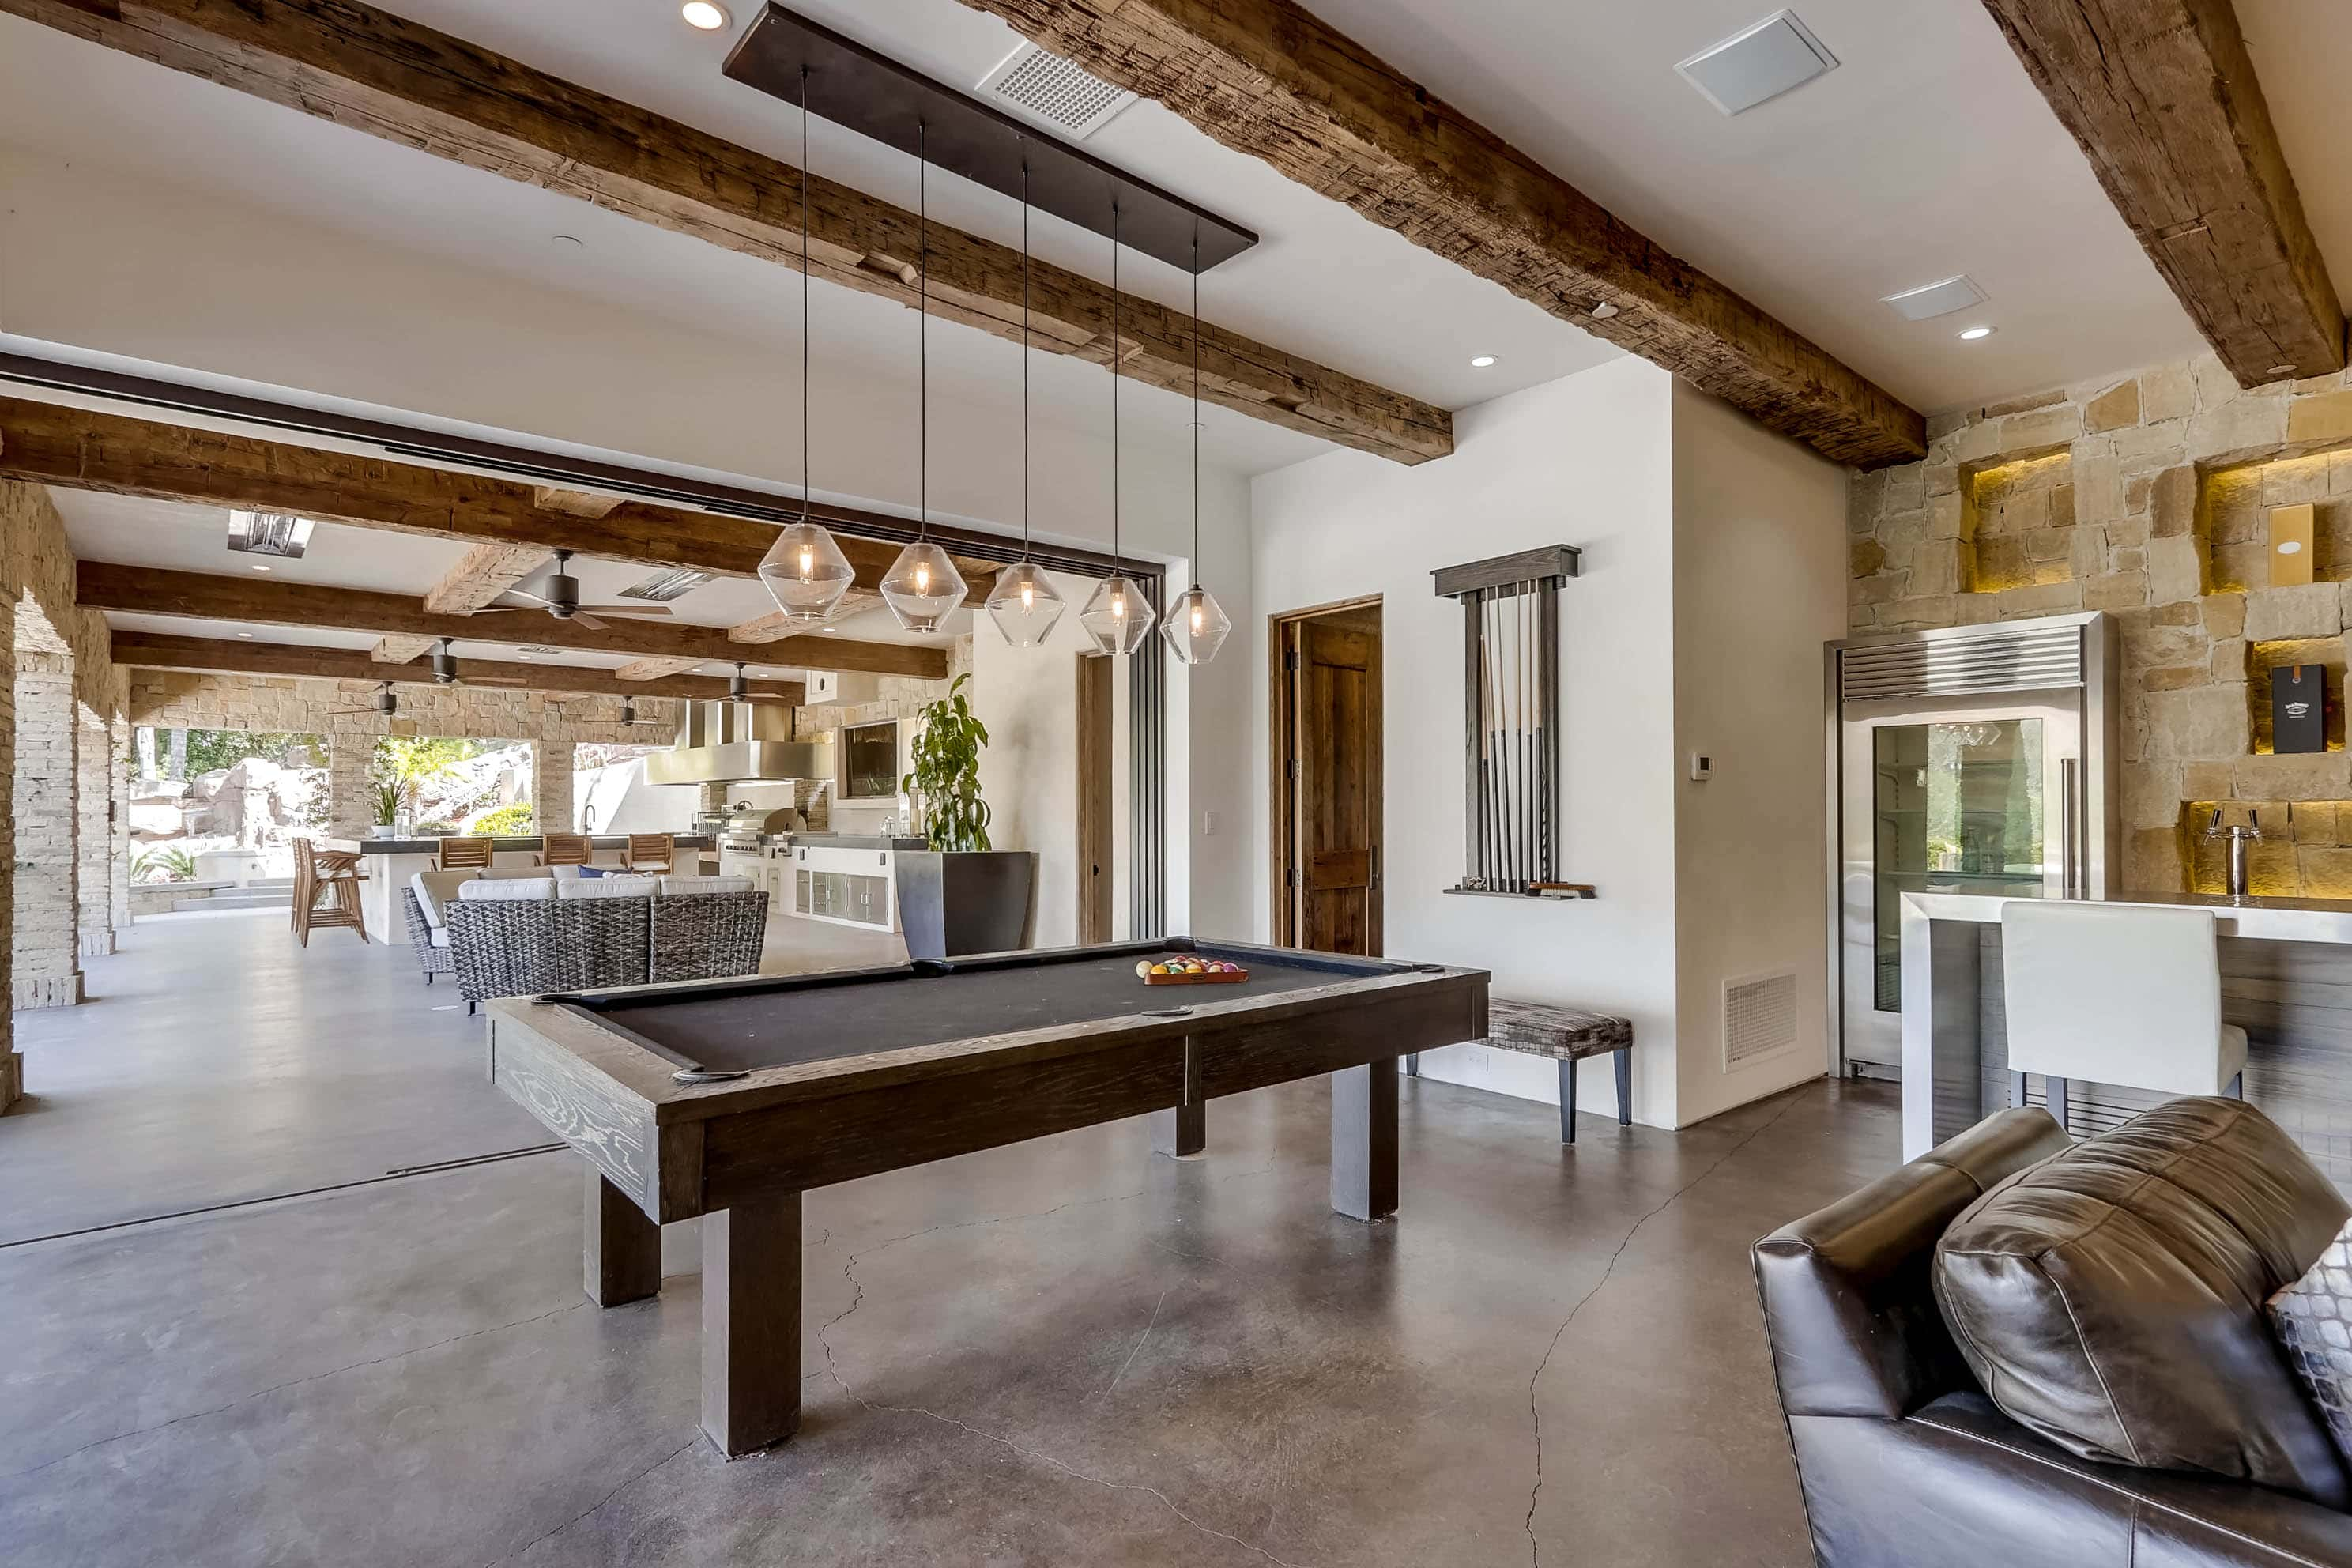 Wood beamed ceilings, retractable walls of glass, pool table, custom lighting, and living room at 22355 Starwood Dr, Yorba Linda